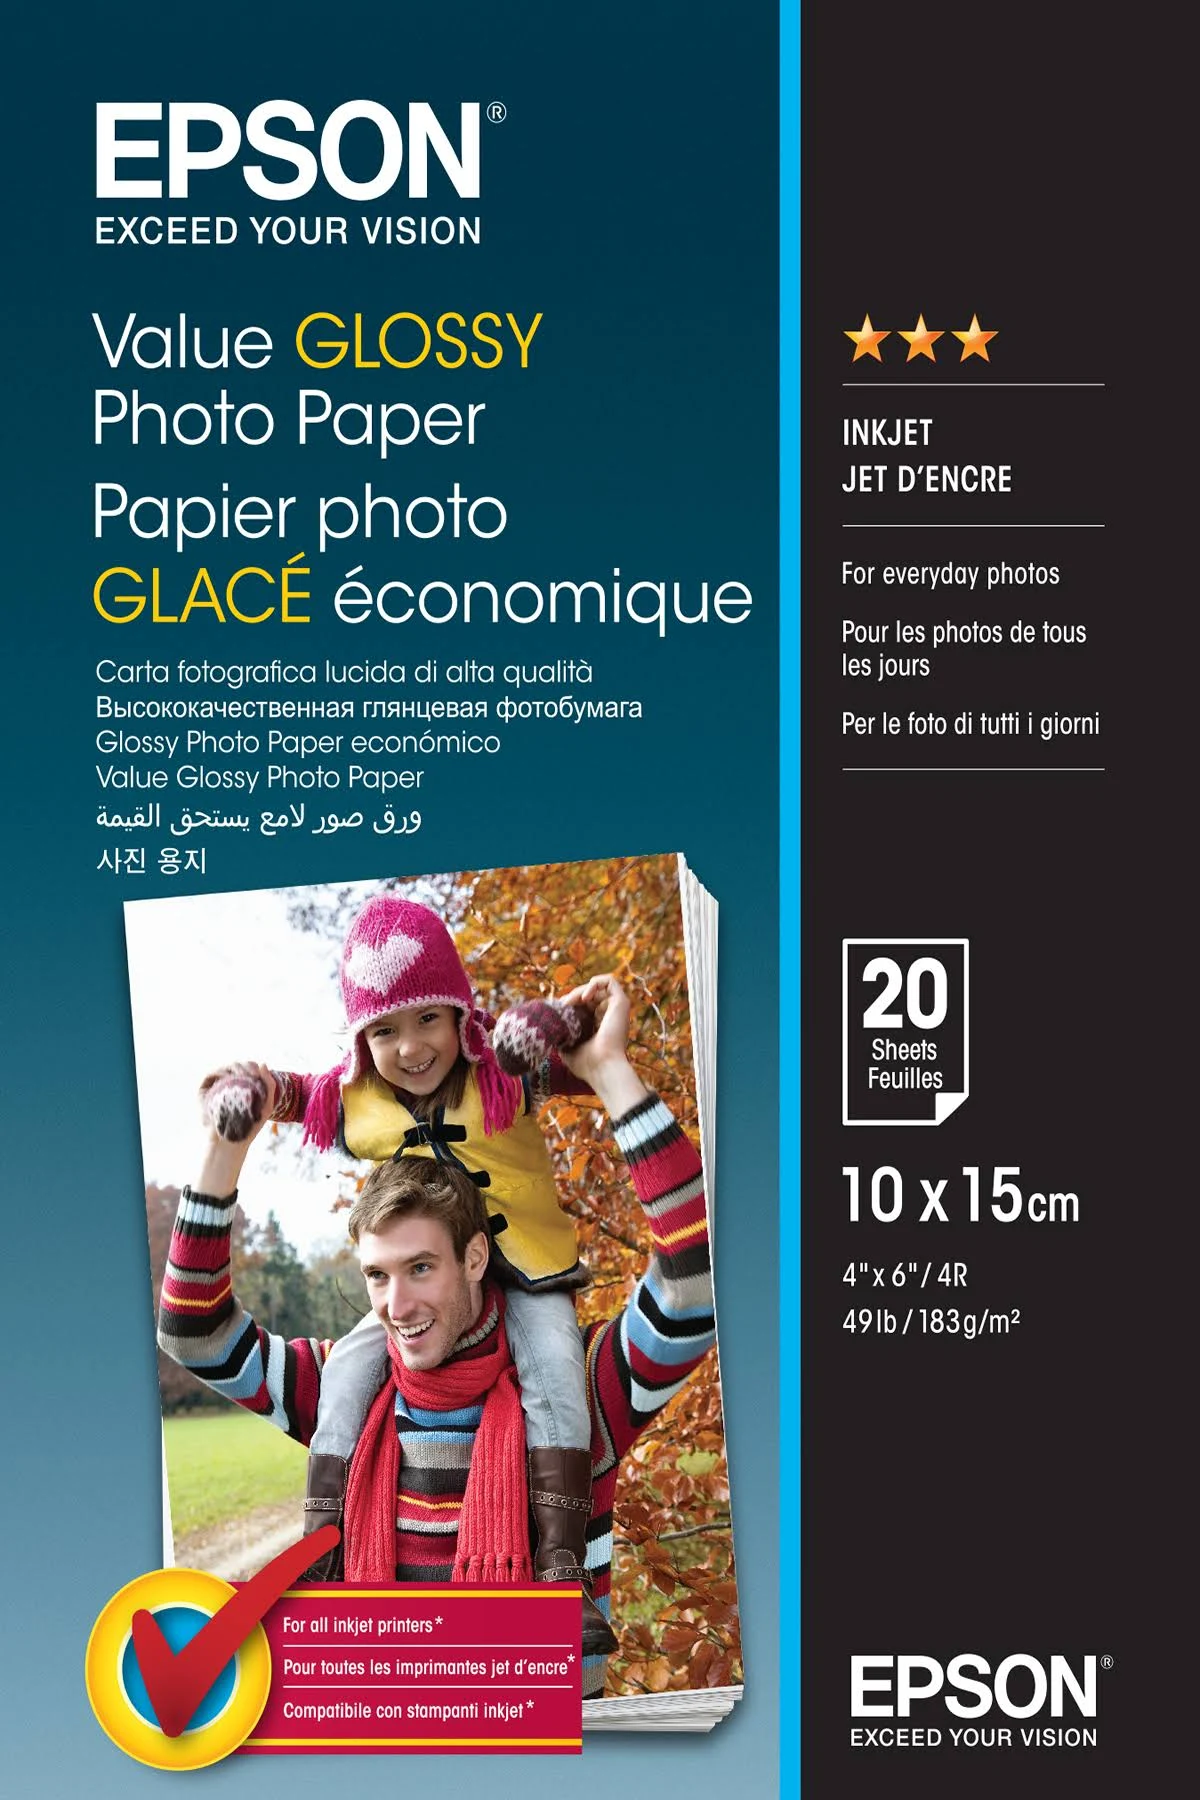 Epson Glace Premium Glossy Photo Paper 10 x 15